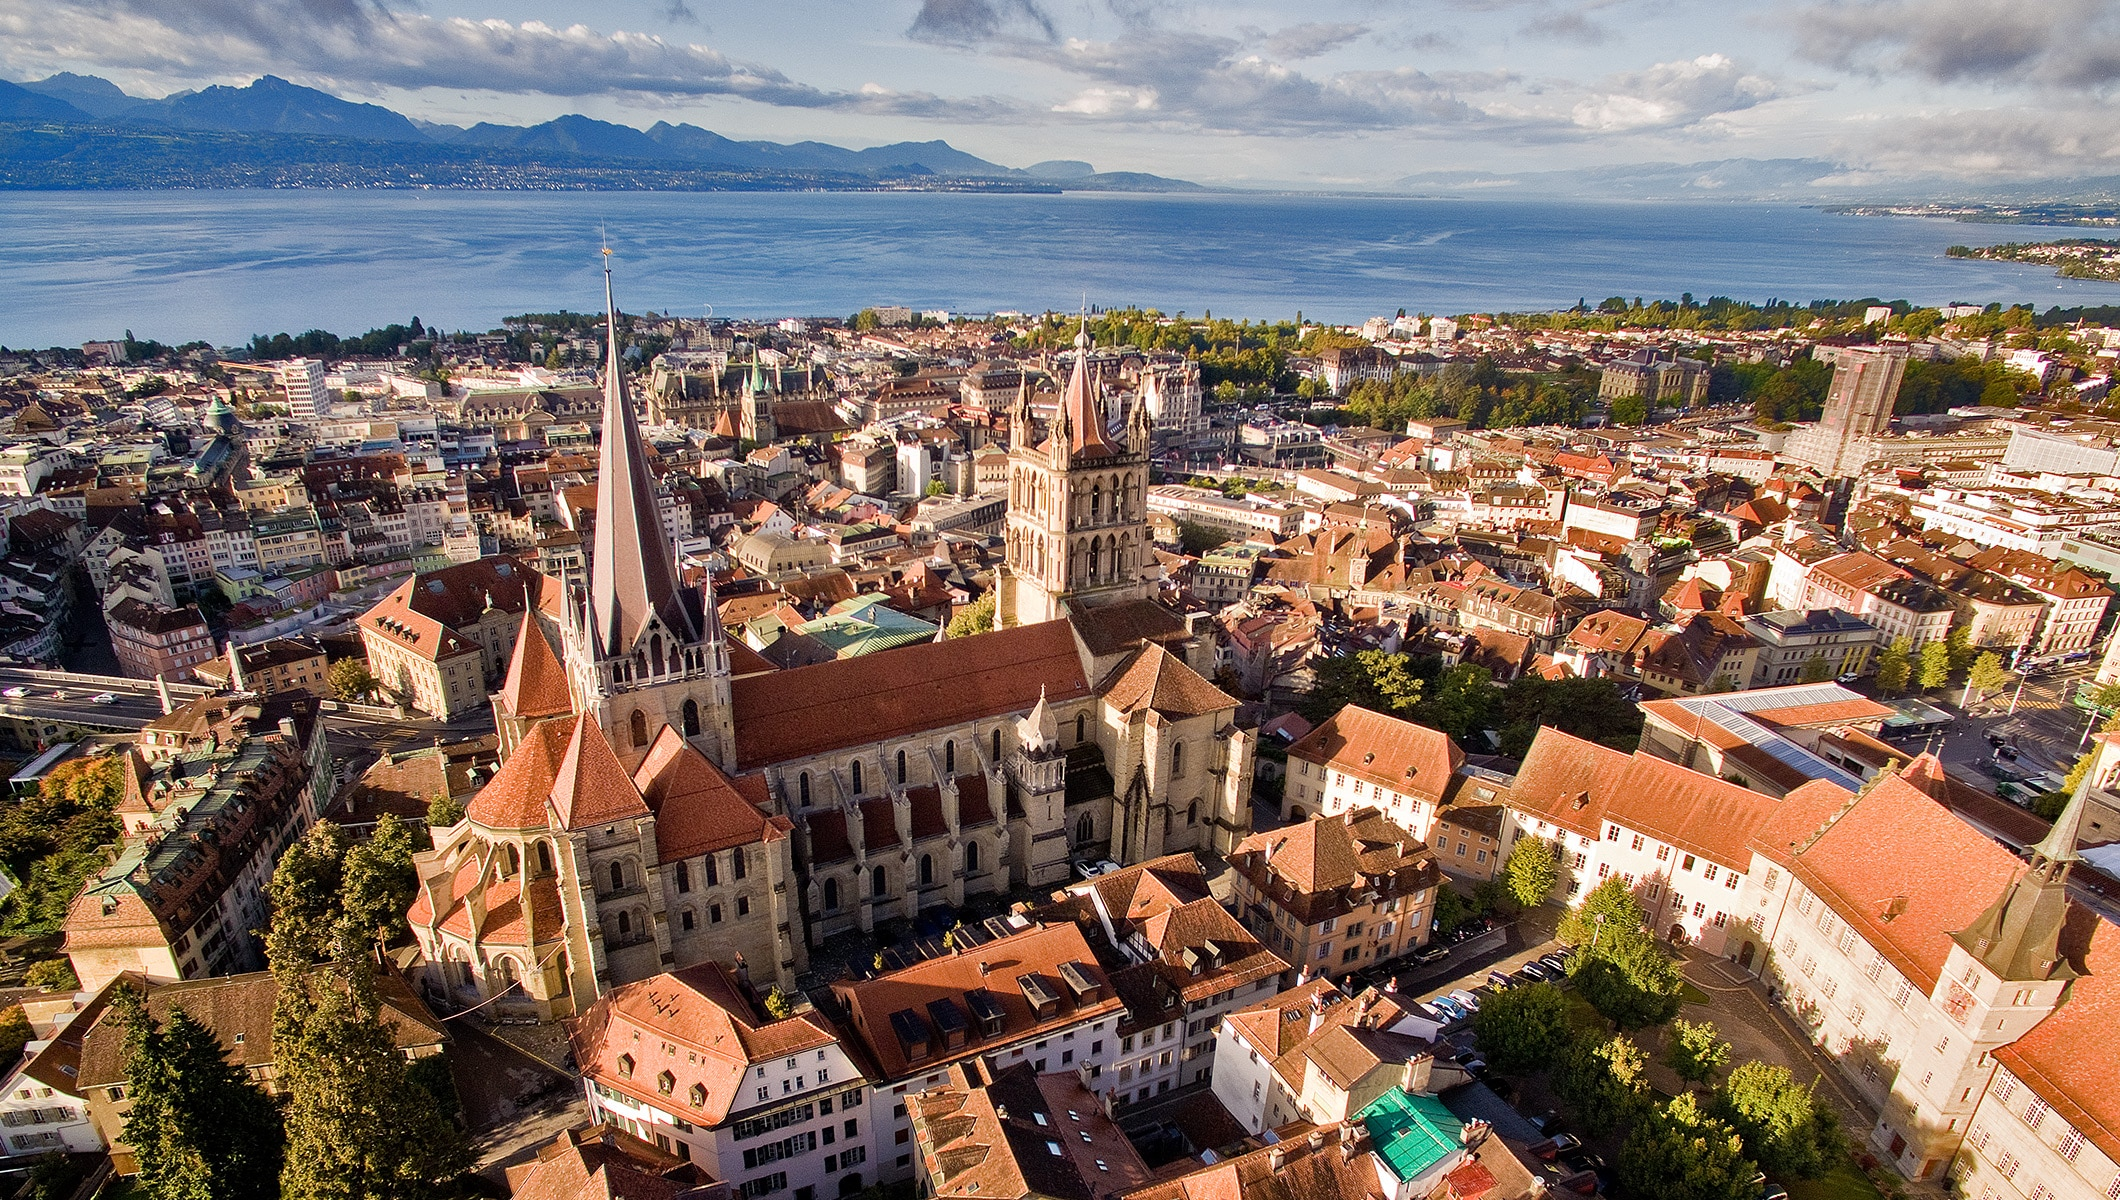 2020 Vision: Looking ahead to Lausanne – a cultural tour